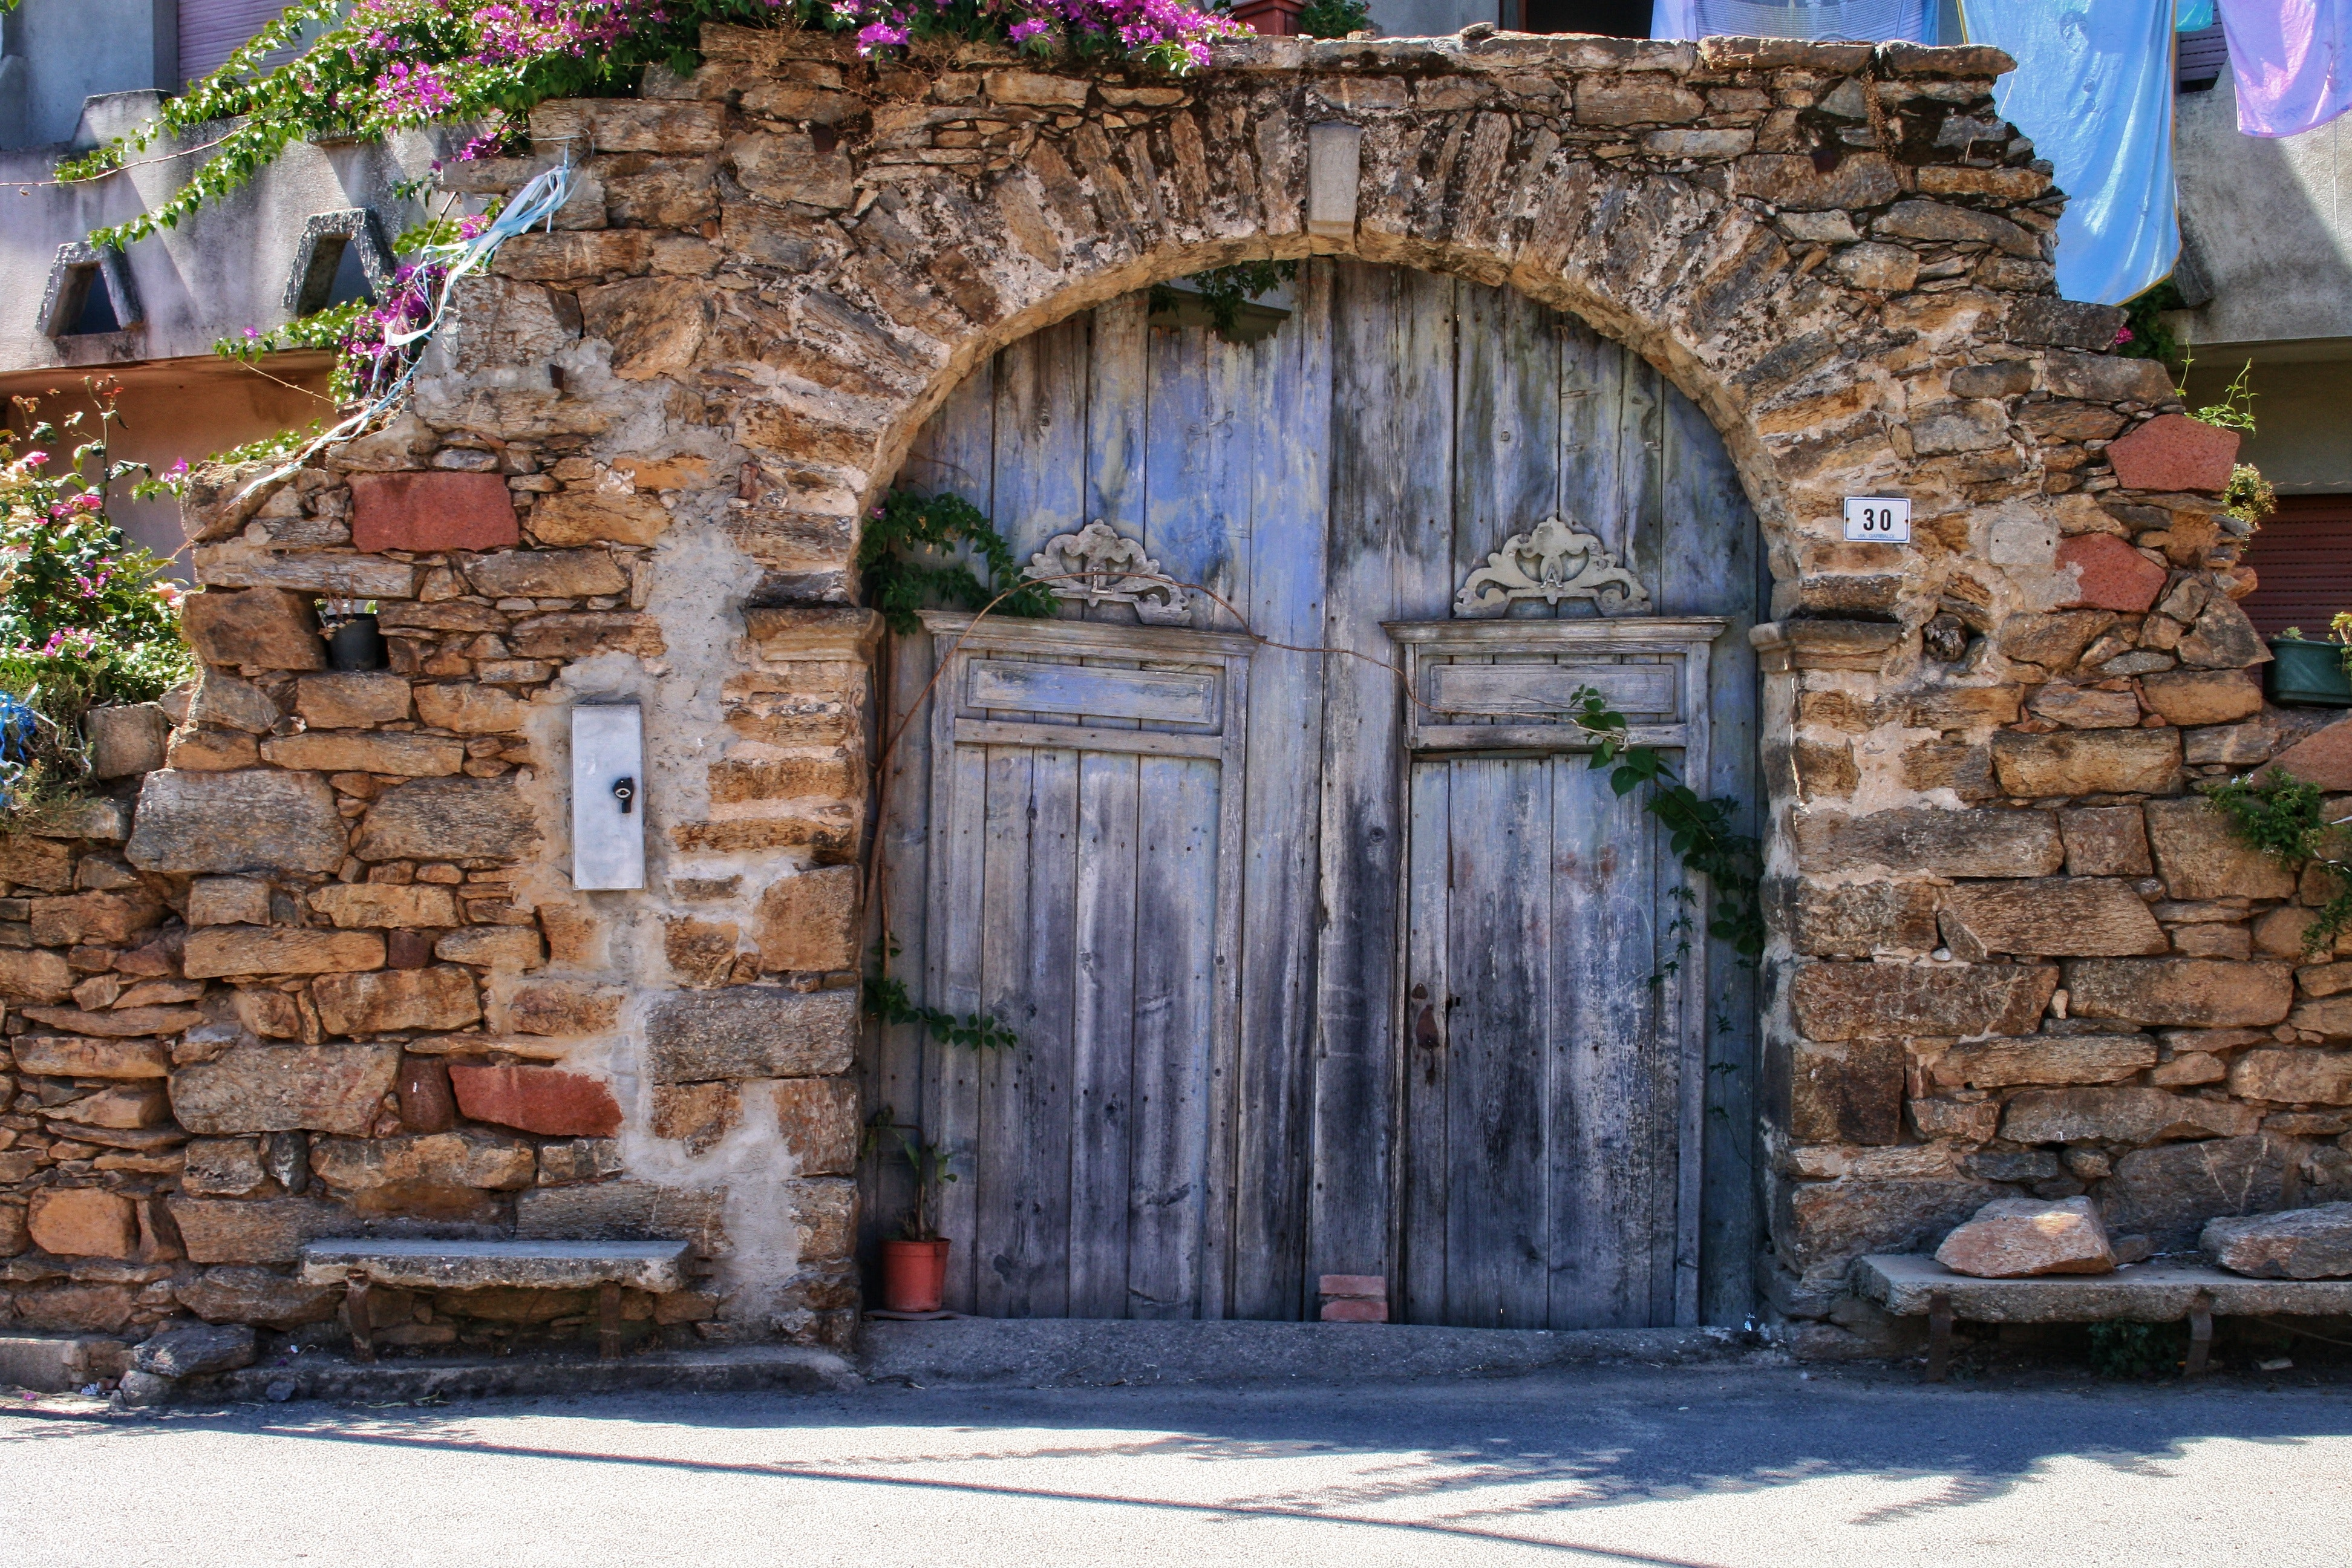 An old wooden door in Sardinia